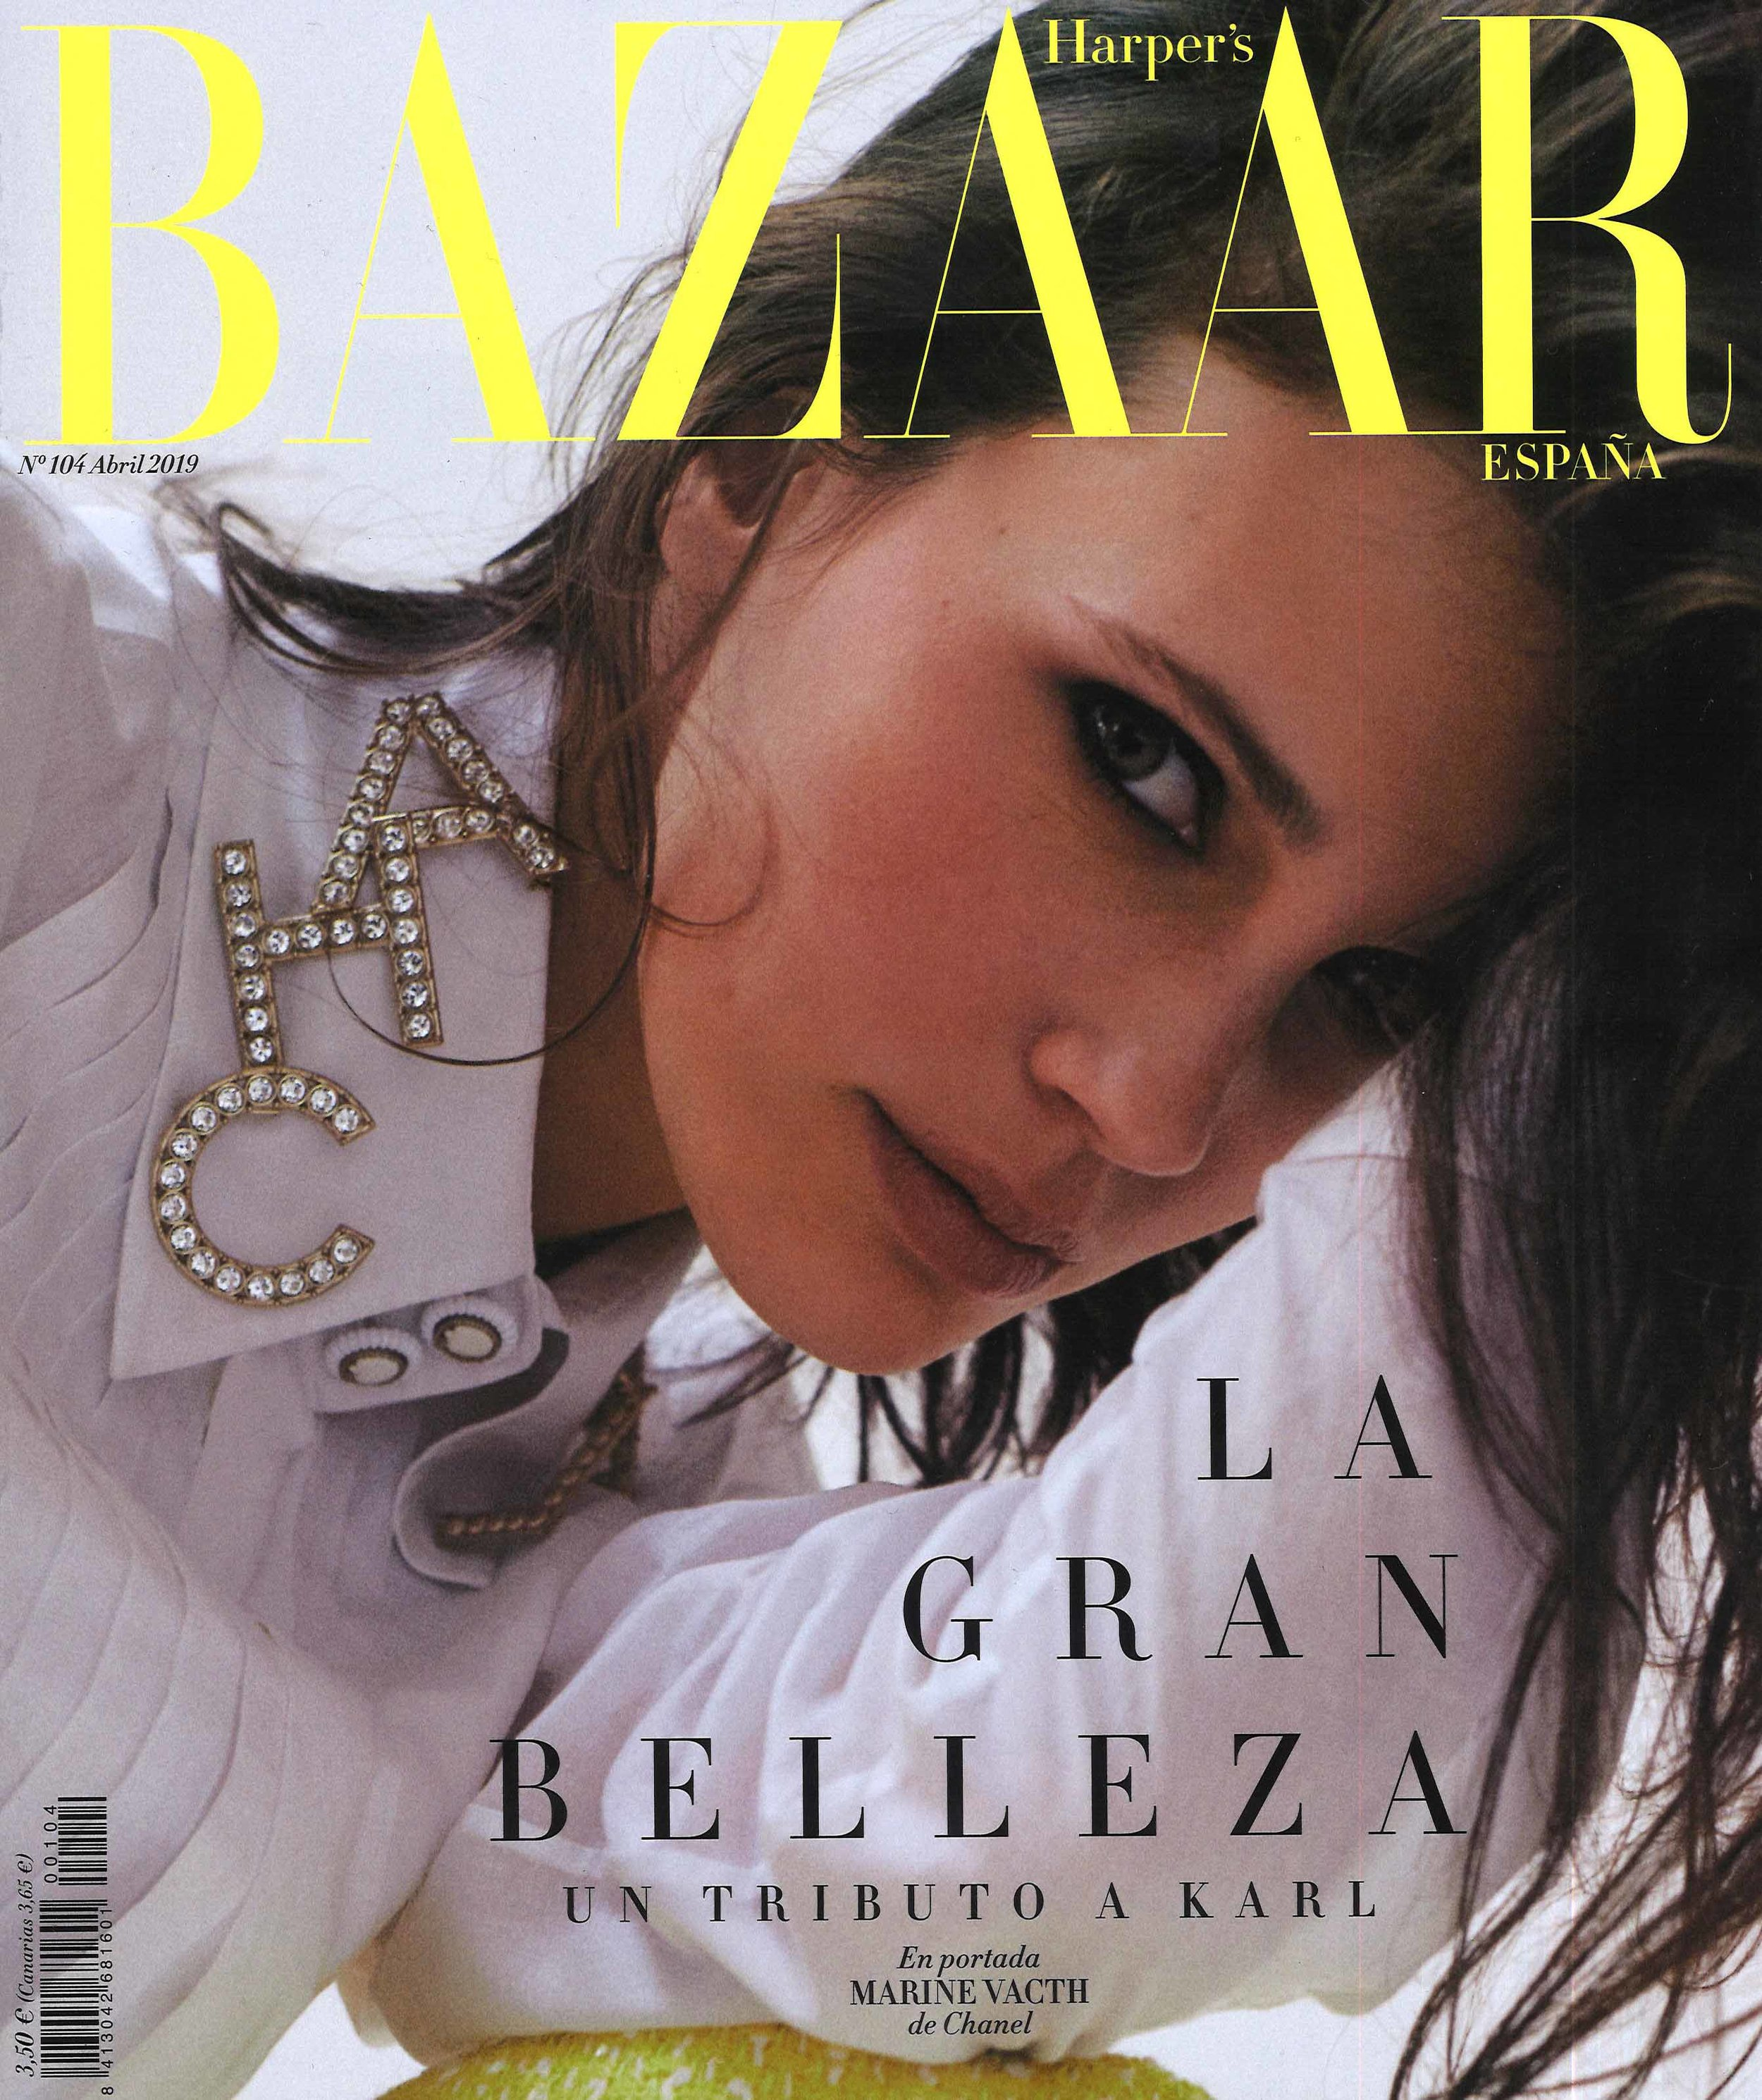 Harper's Bazaar Spain April 2019 Cover.jpg